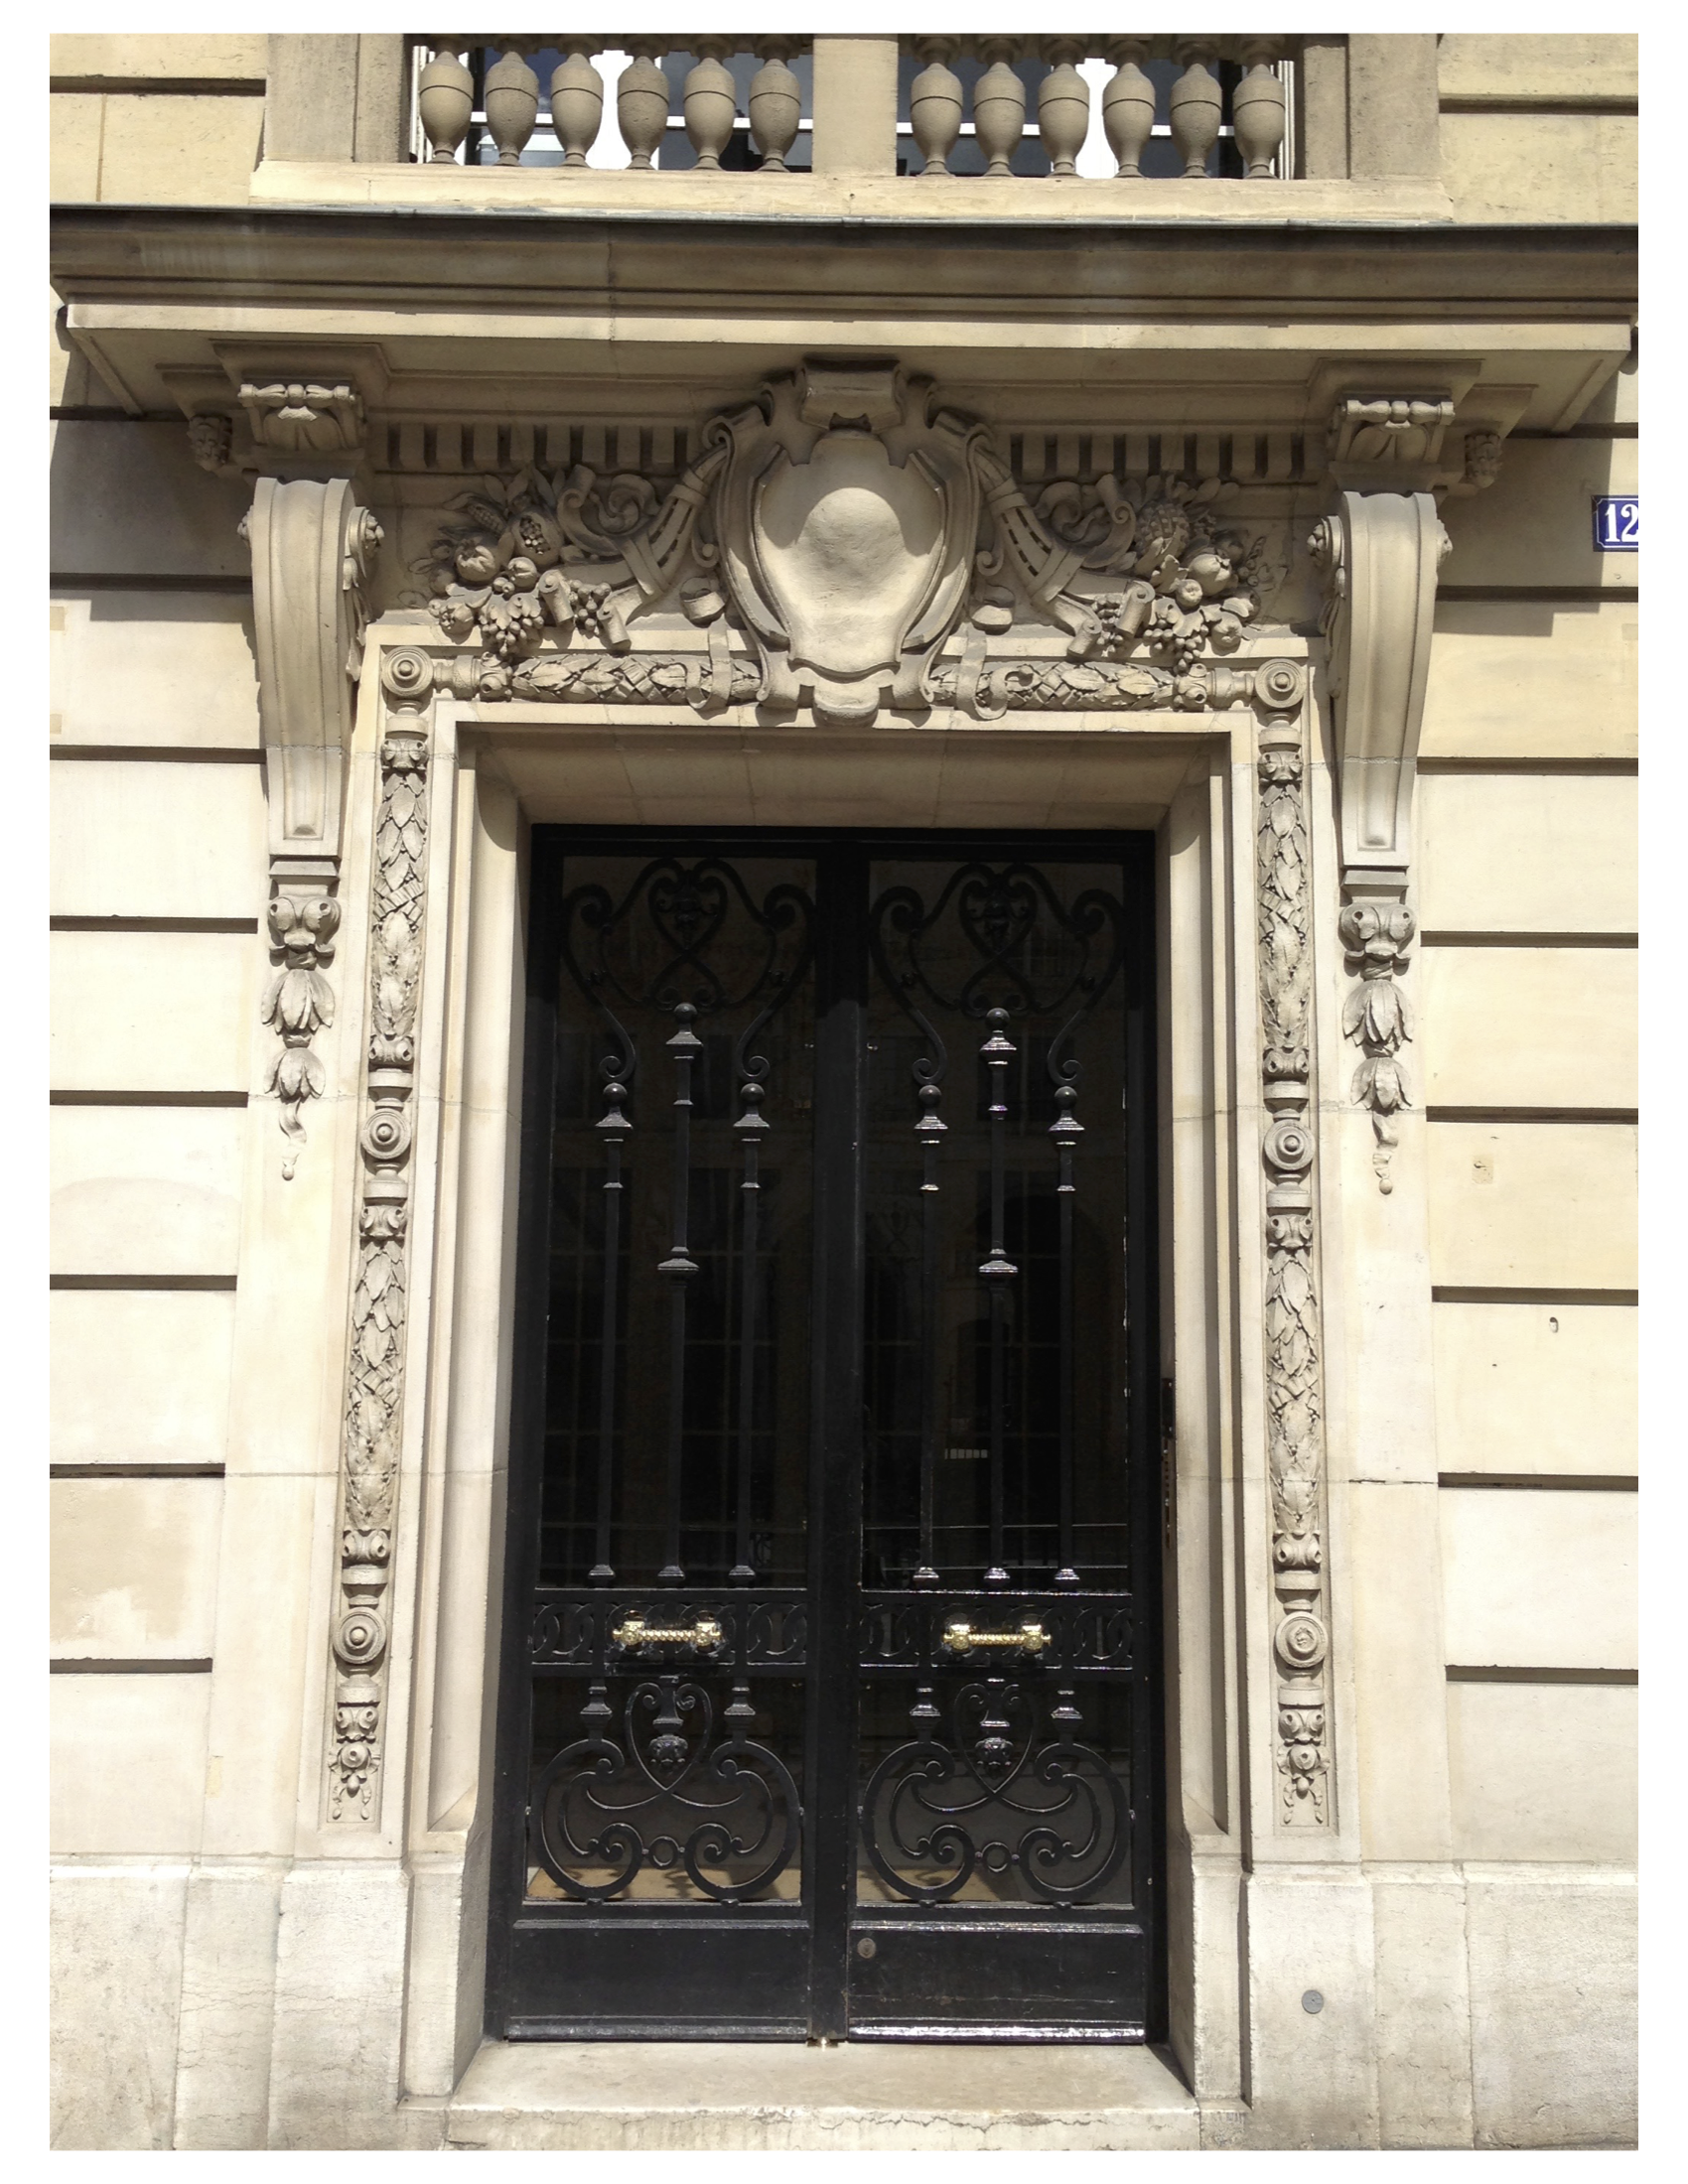 Delightful Sumptuous Foliate Garlands Embrace This Superb Parisian Stone Door  Surround, Punctuated By A Bold Cartouche